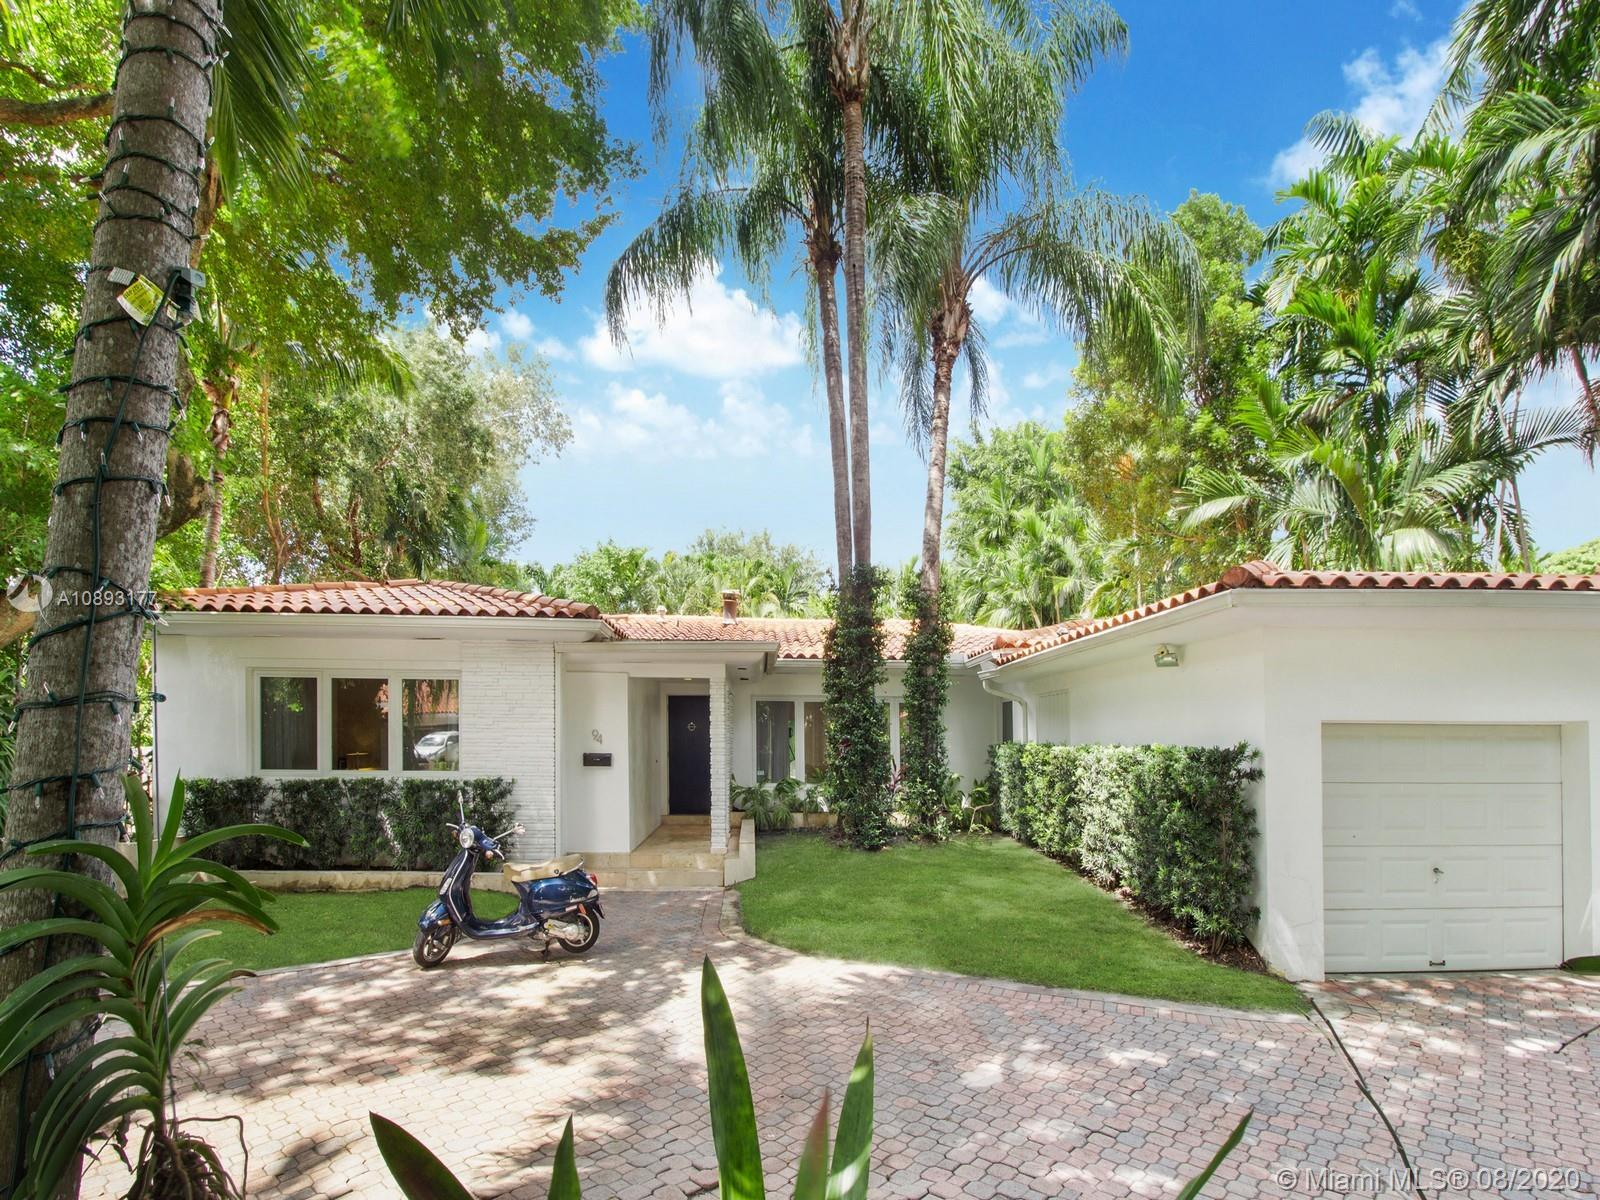 The best opportunity to own in Bay Heights on an oversized lot with a gracious interior layout and flexible spaces. Updated with designer wall coverings, contemporary bathrooms and custom built-ins. Gorgeous hardwood and travertine marble flooring throughout the entire home. Banks of impact doors in the family room open up to the modern covered veranda and swimming pool area. Garage converted to nanny's quarters and serves as the 4th bedroom and 4th bathroom. This superb Coconut Grove community offers a private police patrol 24/7 without any mandatory association dues as well as not in a flood zone. Family friendly neighborhood with sidewalks perfect for walking or kids riding bikes. Live only minutes away from downtown Brickell, Miami Beach and Key Biscayne.